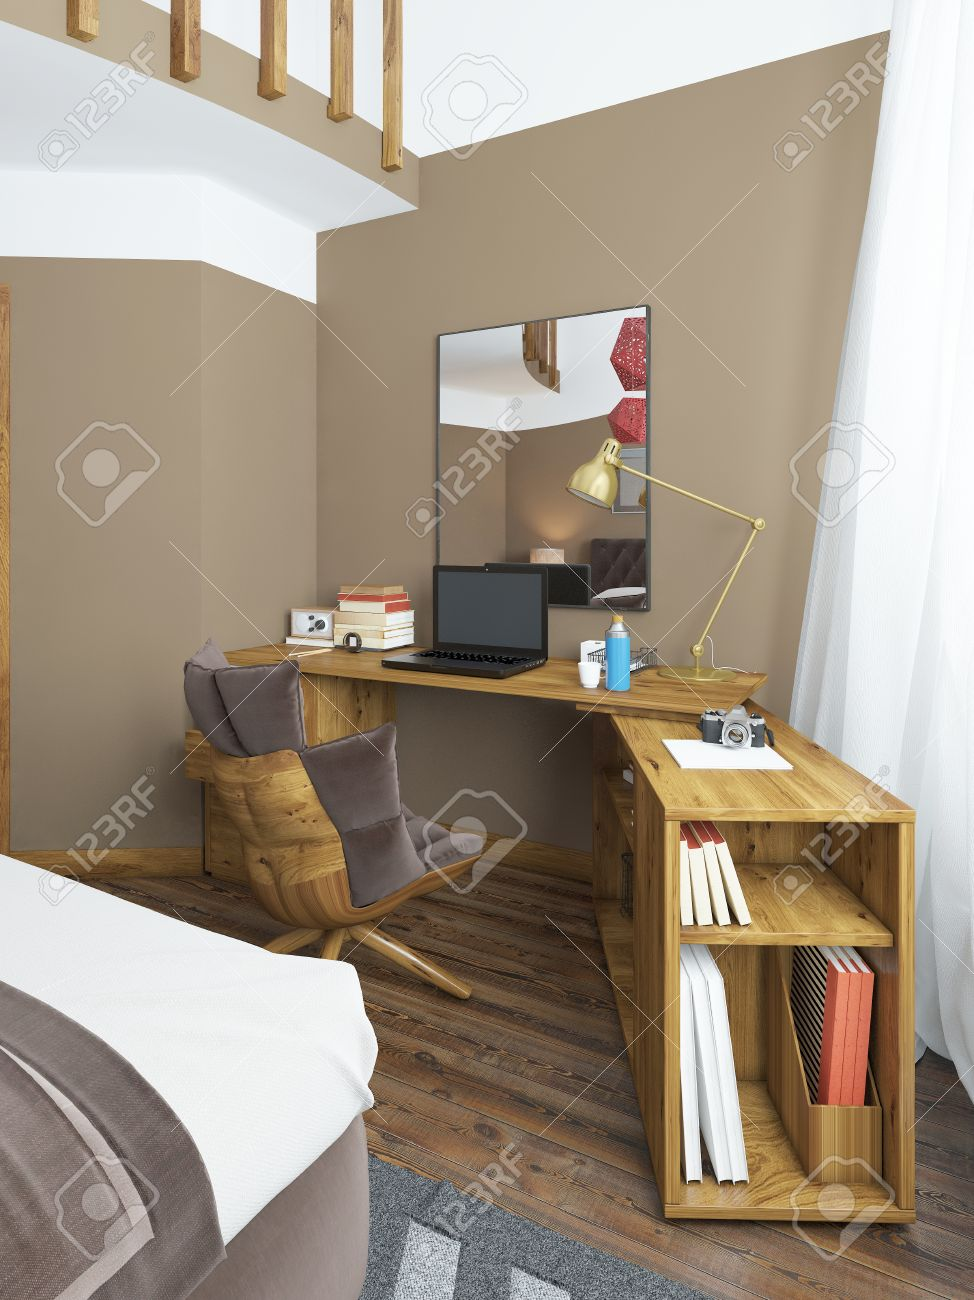 Schlafzimmer Massivholz Stock Photo